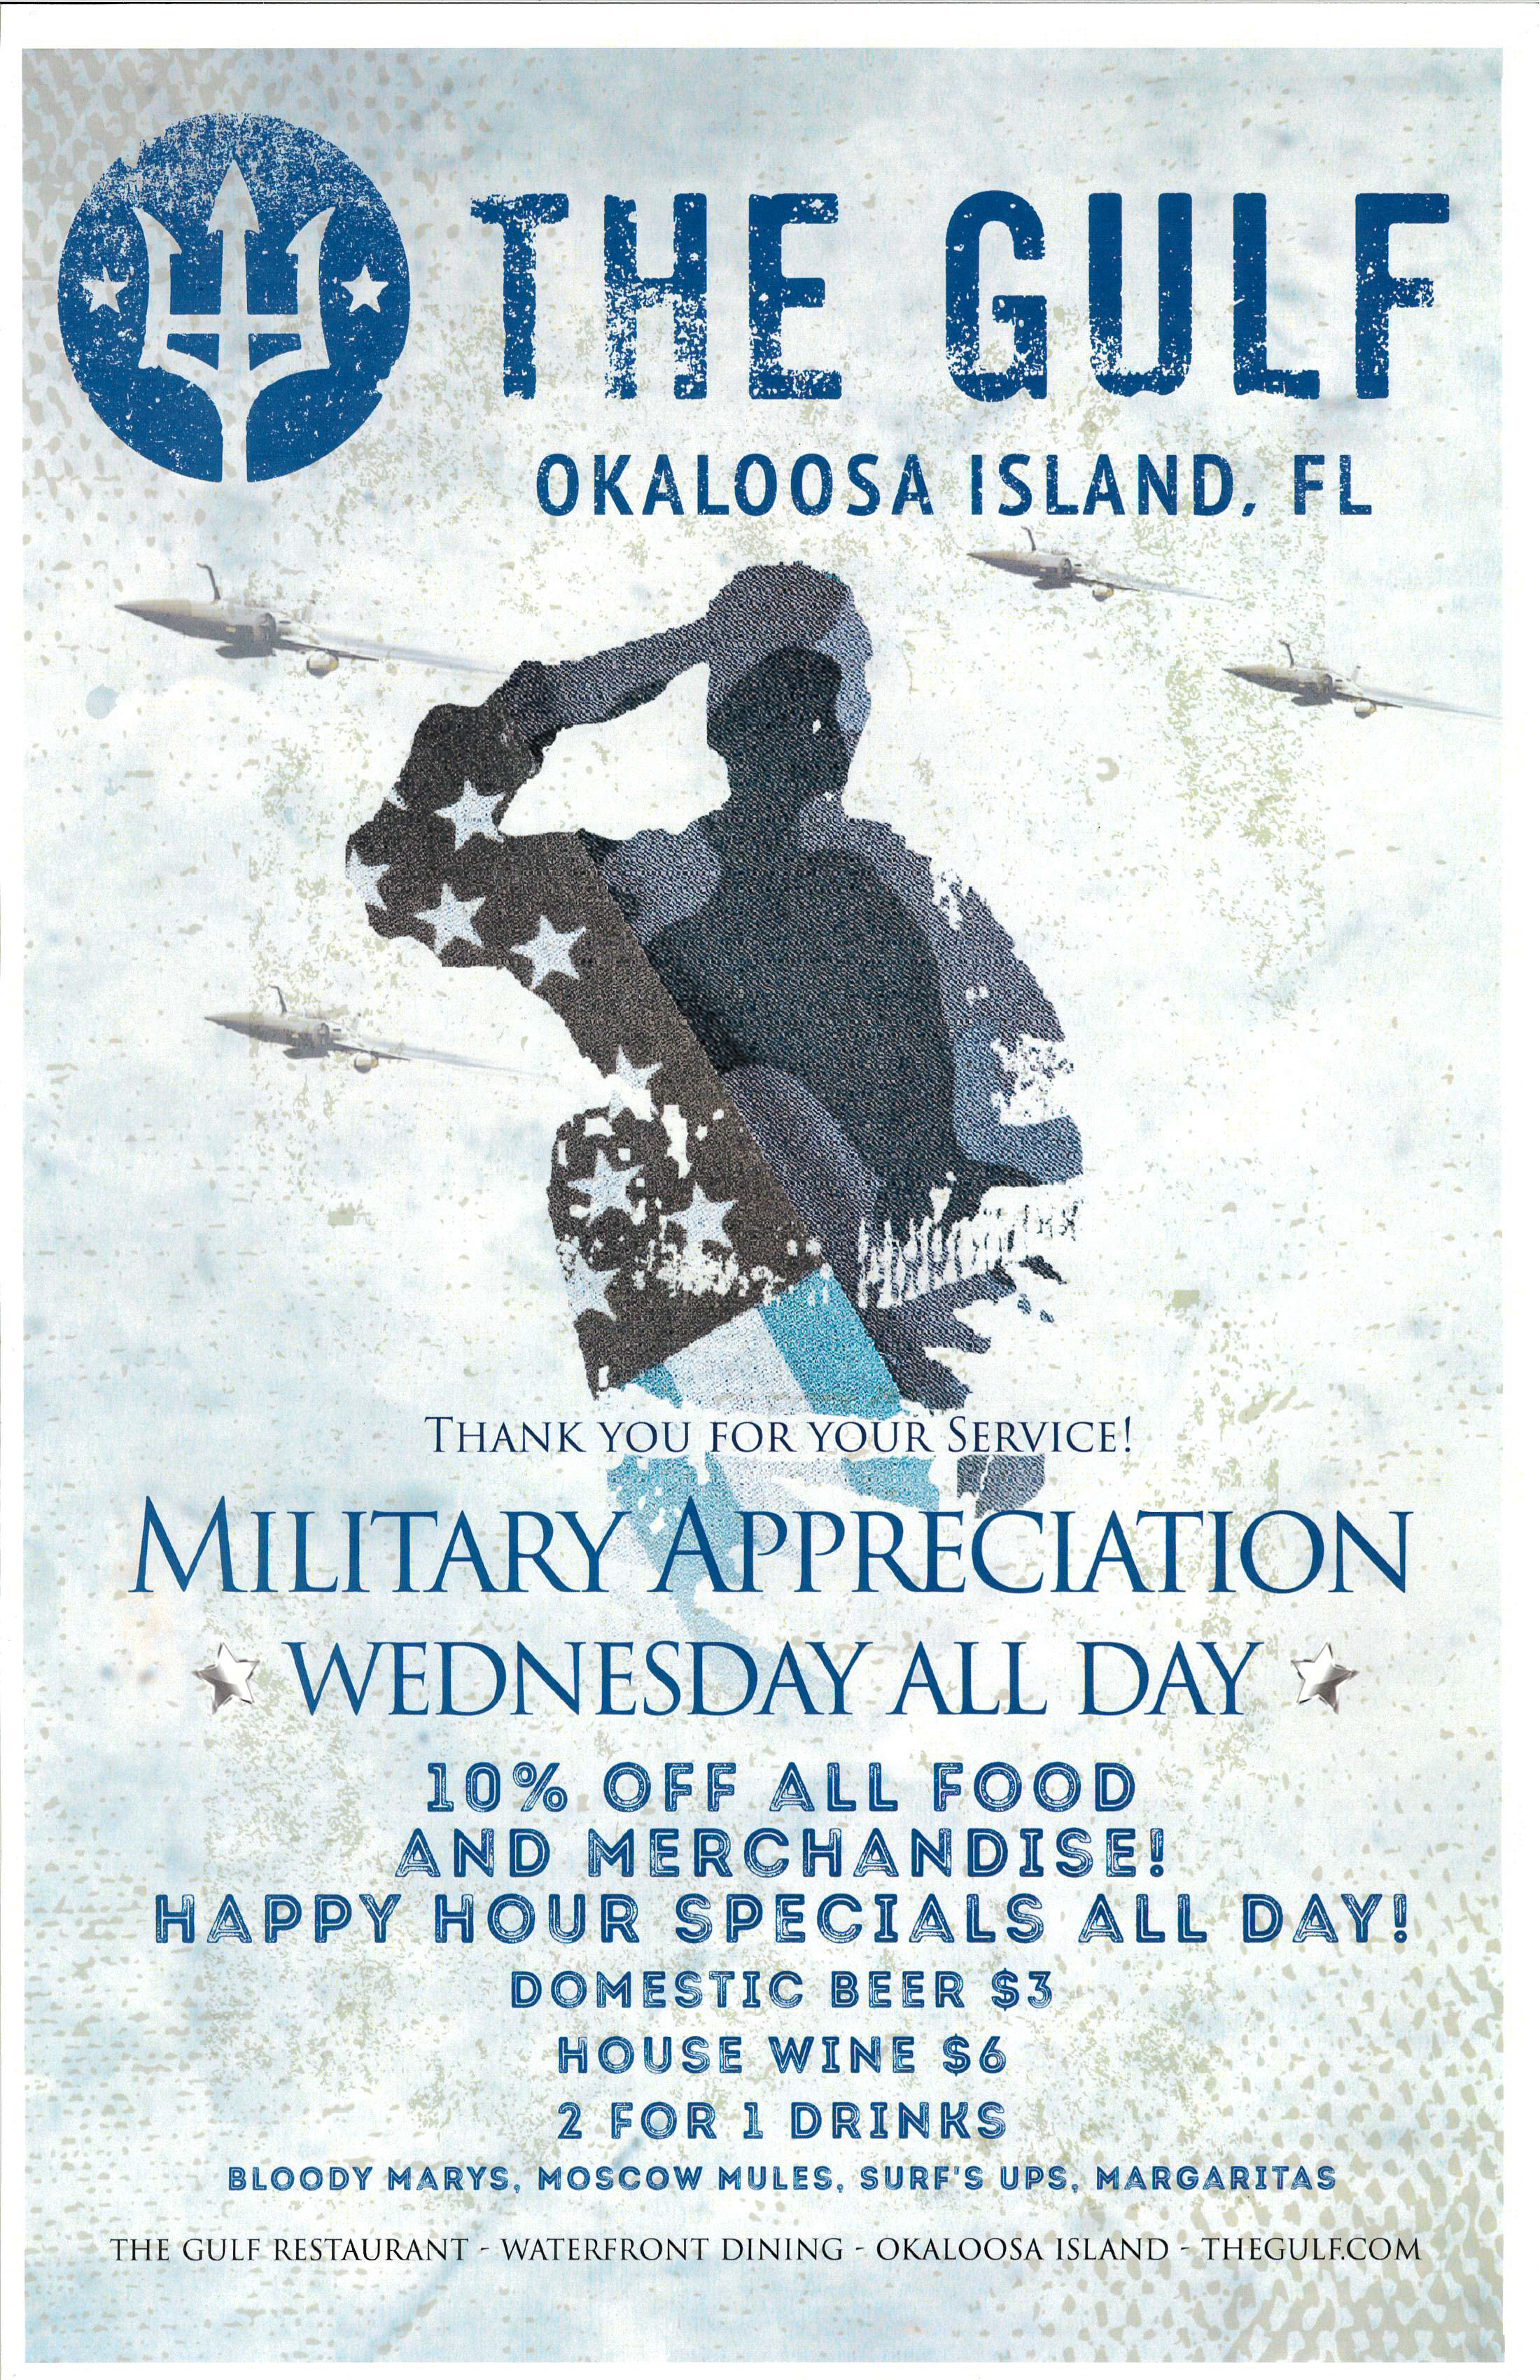 Military Appreciation Wednesdays At The Gulf - Feb 27, 2019 - Greater -9594